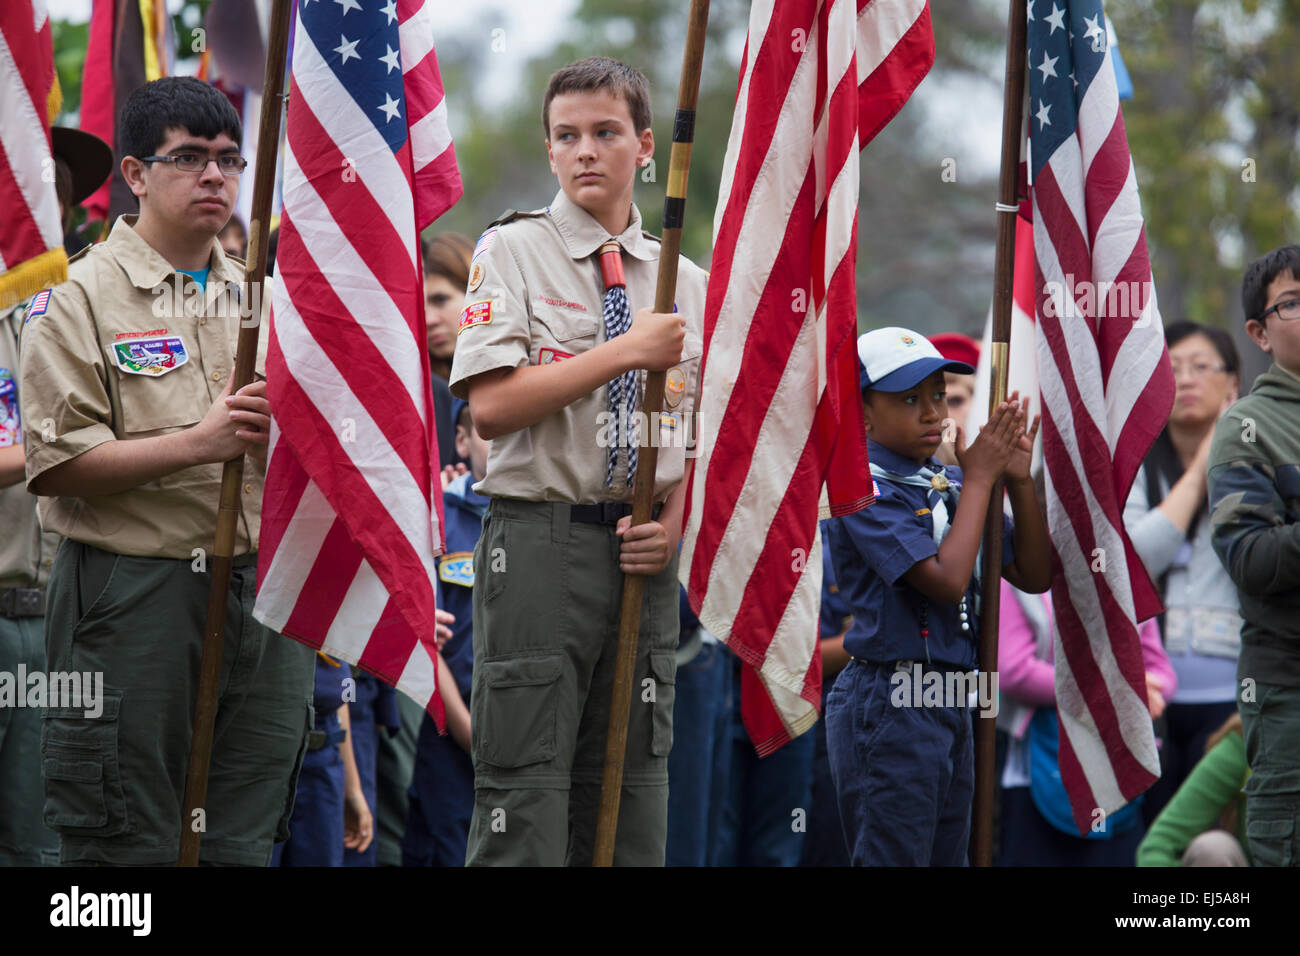 Boyscouts display US Flag at solemn 2014 Memorial Day Event, Los Angeles National Cemetery, California, USA - Stock Image